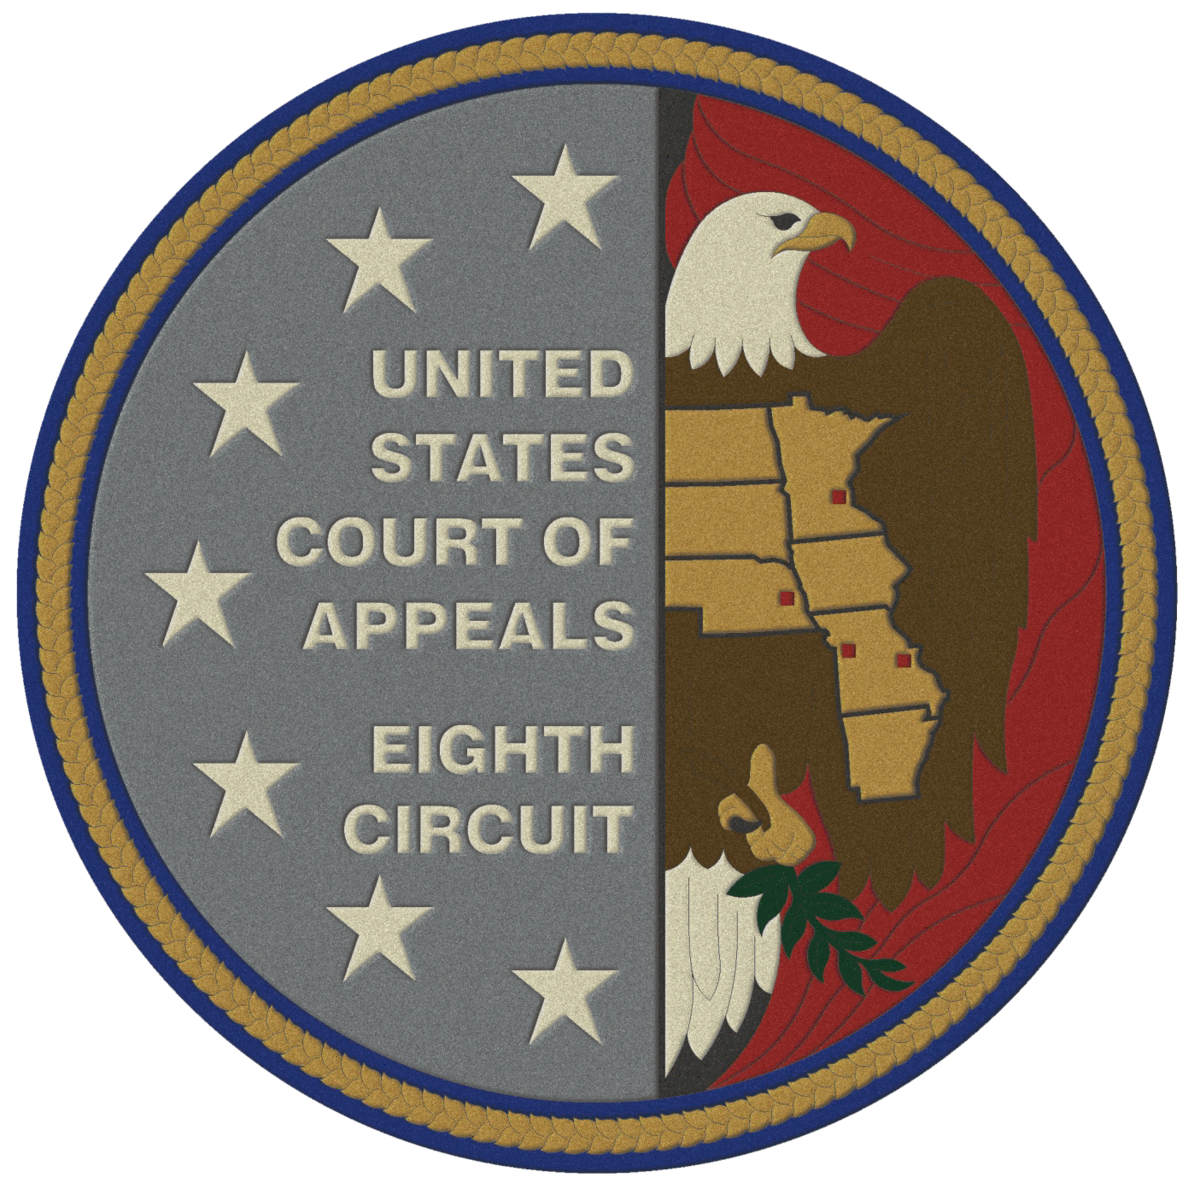 United States Court of Appeals for the Eighth Circuit Wikipedia